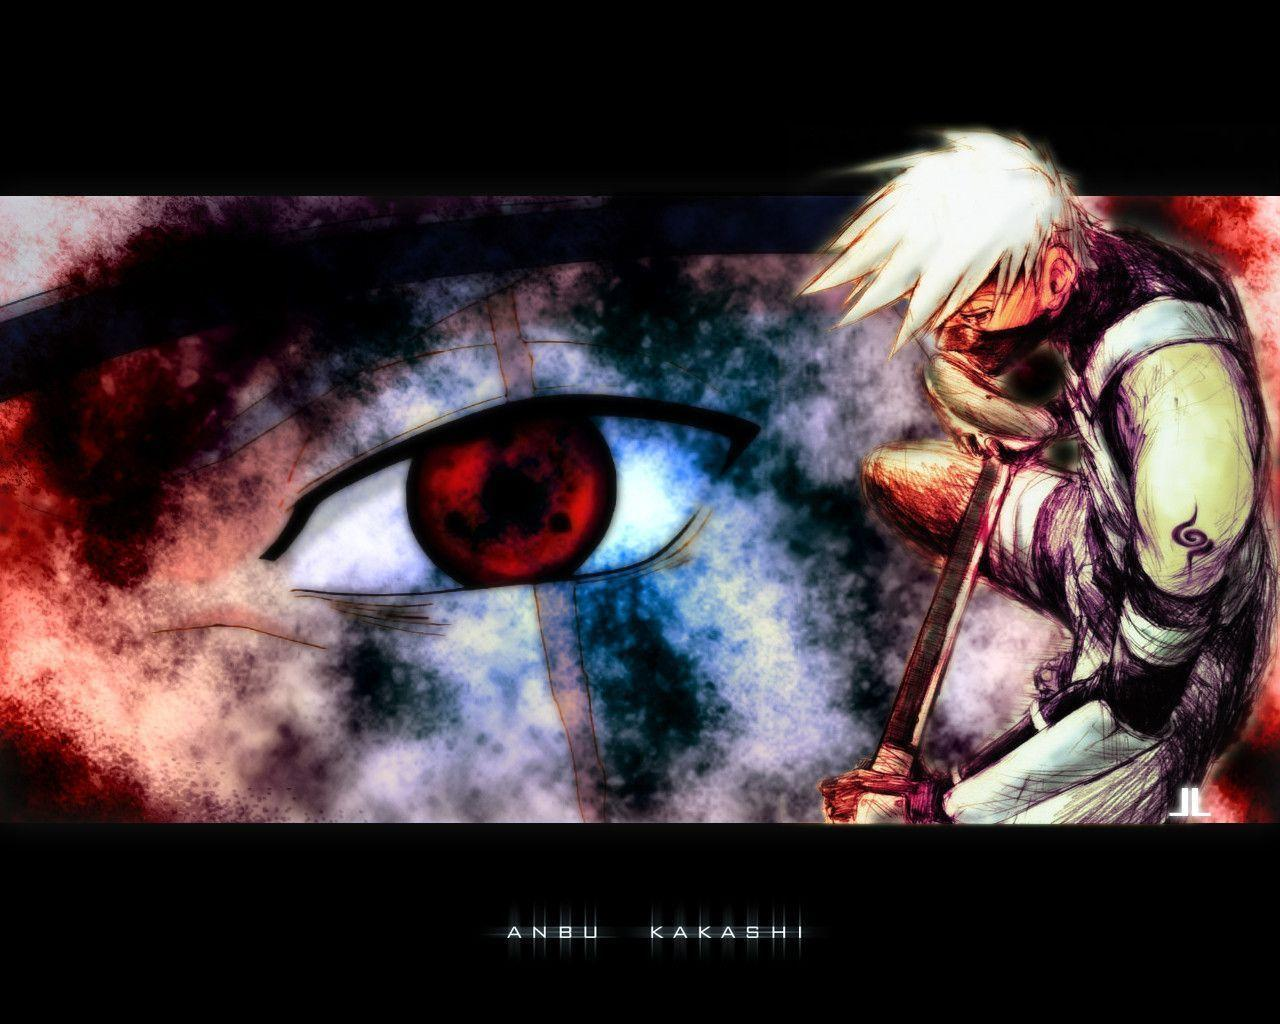 Geography Hd Wallpaper Kakashi Anbu Wallpapers Wallpaper Cave